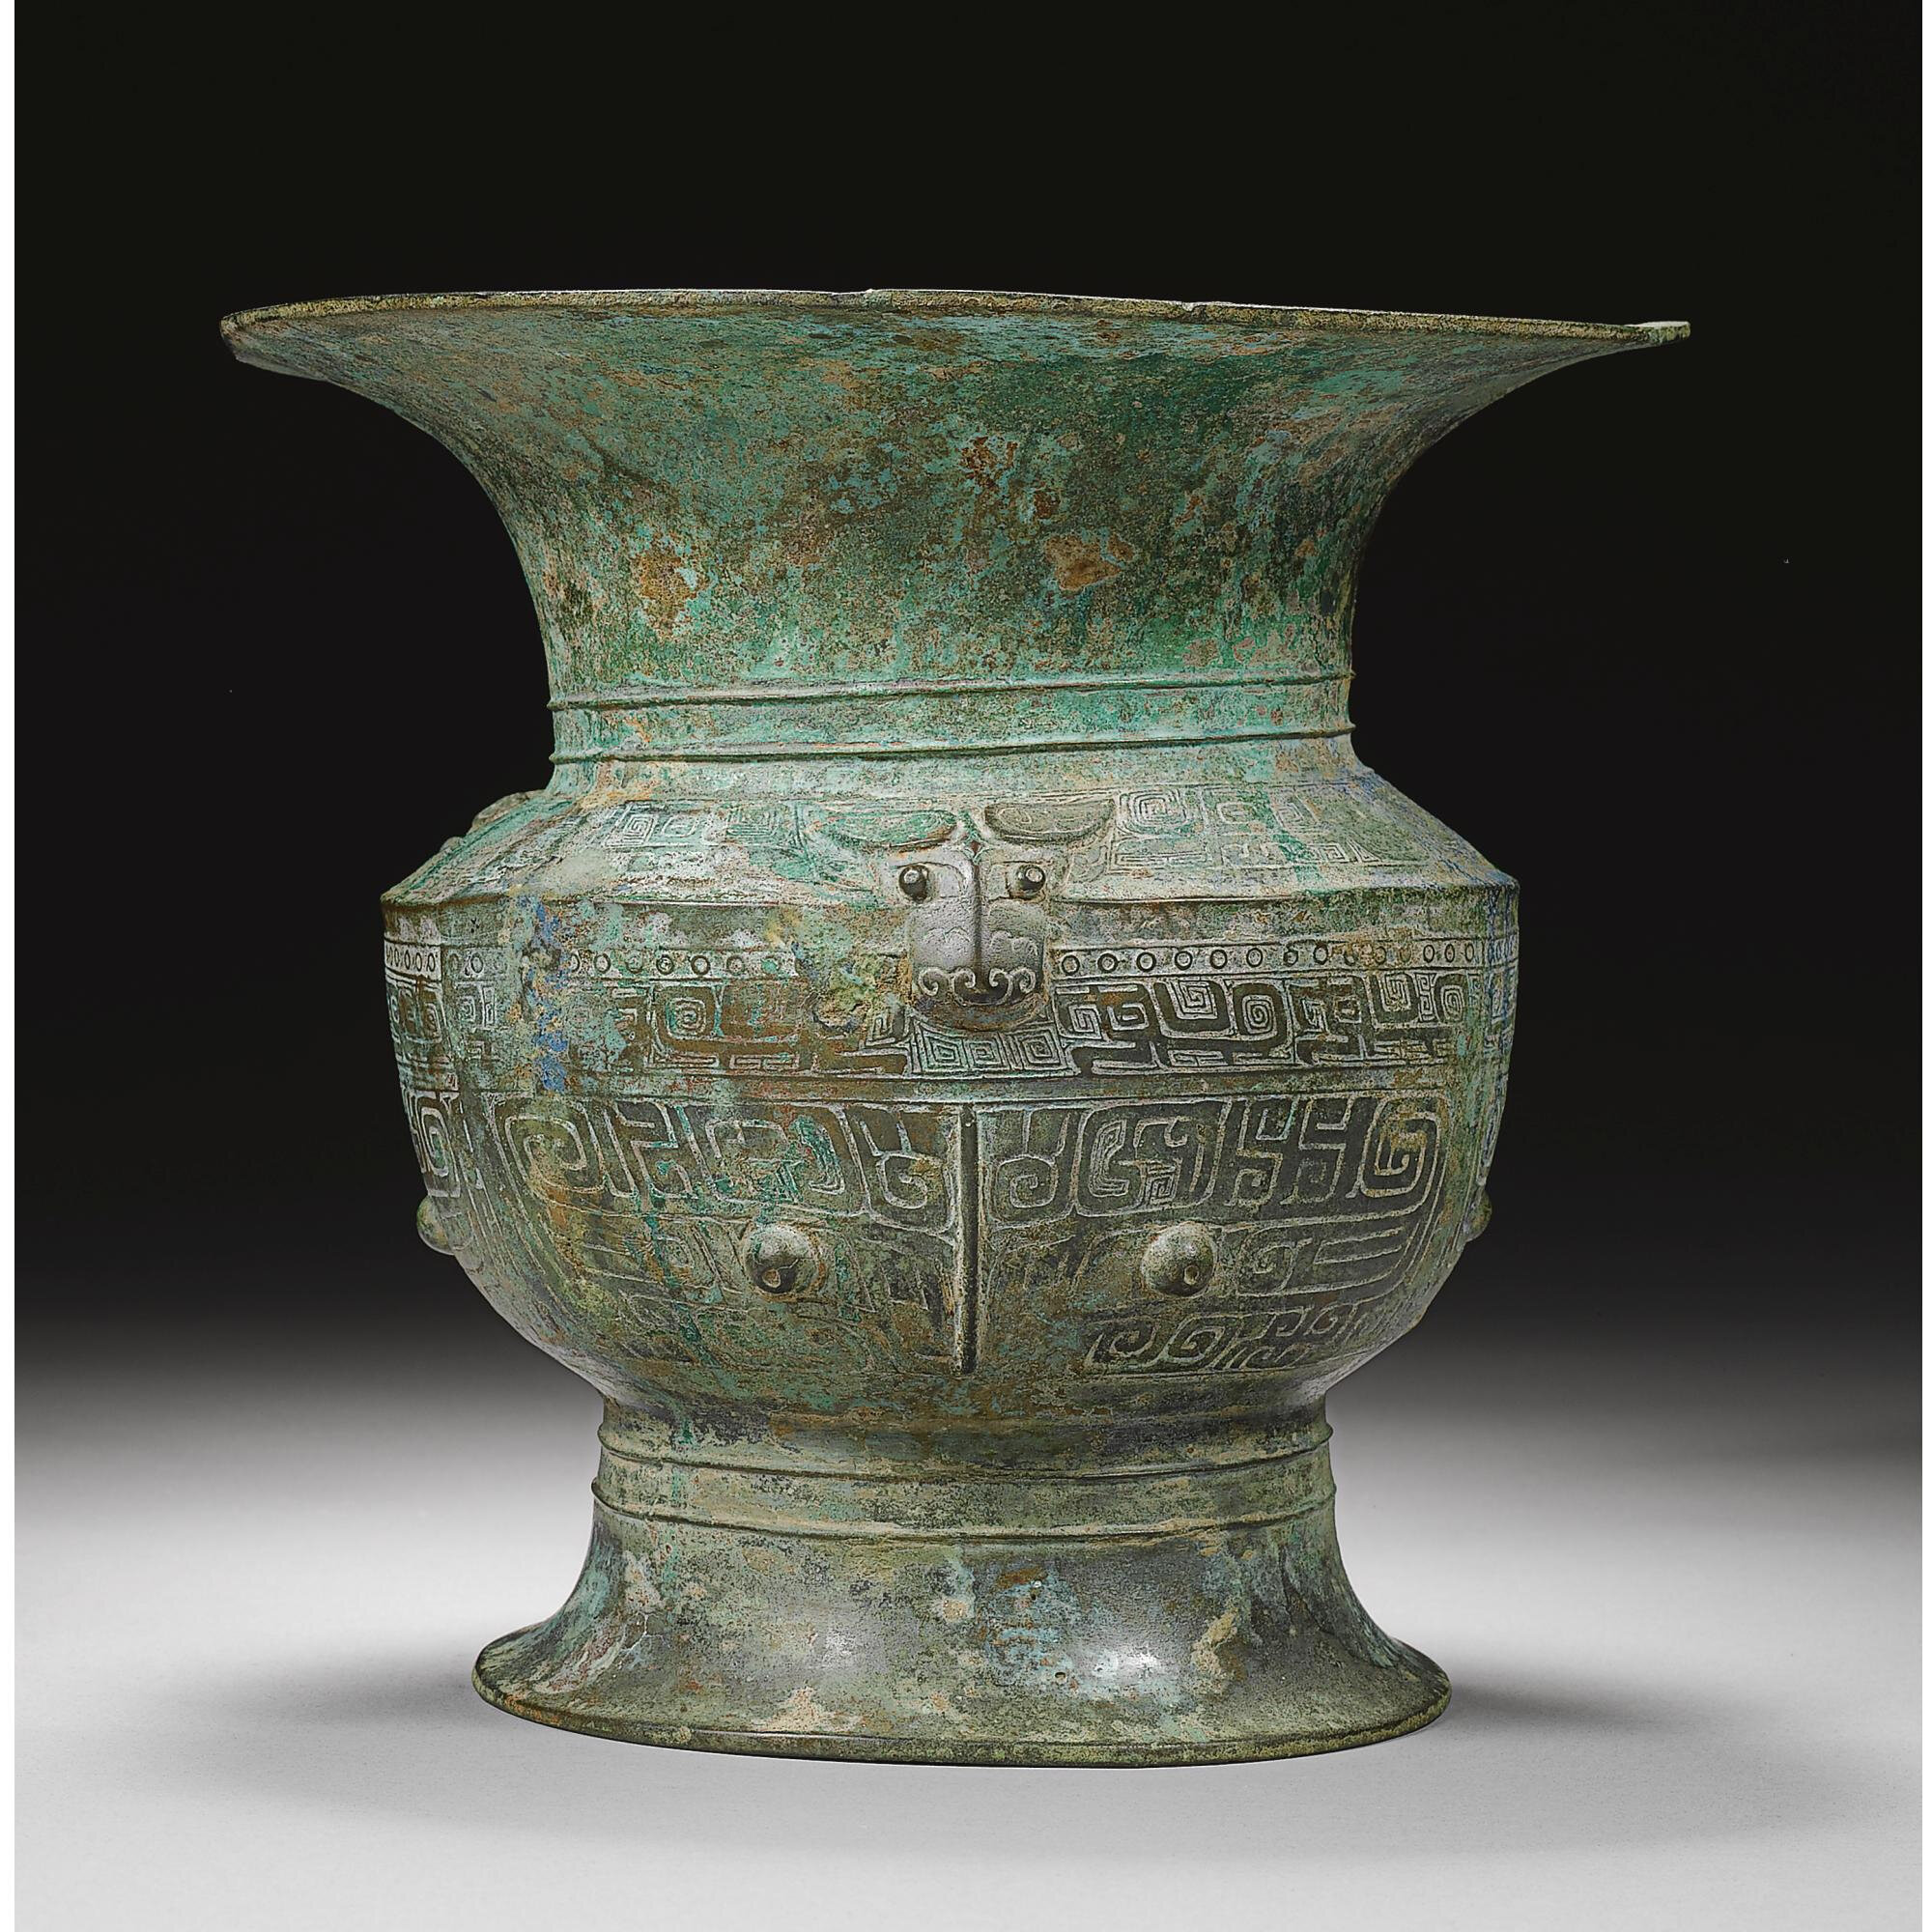 An archaic bronze ritual wine vessel (zun), Late Shang dynasty, 12th-11th century BC